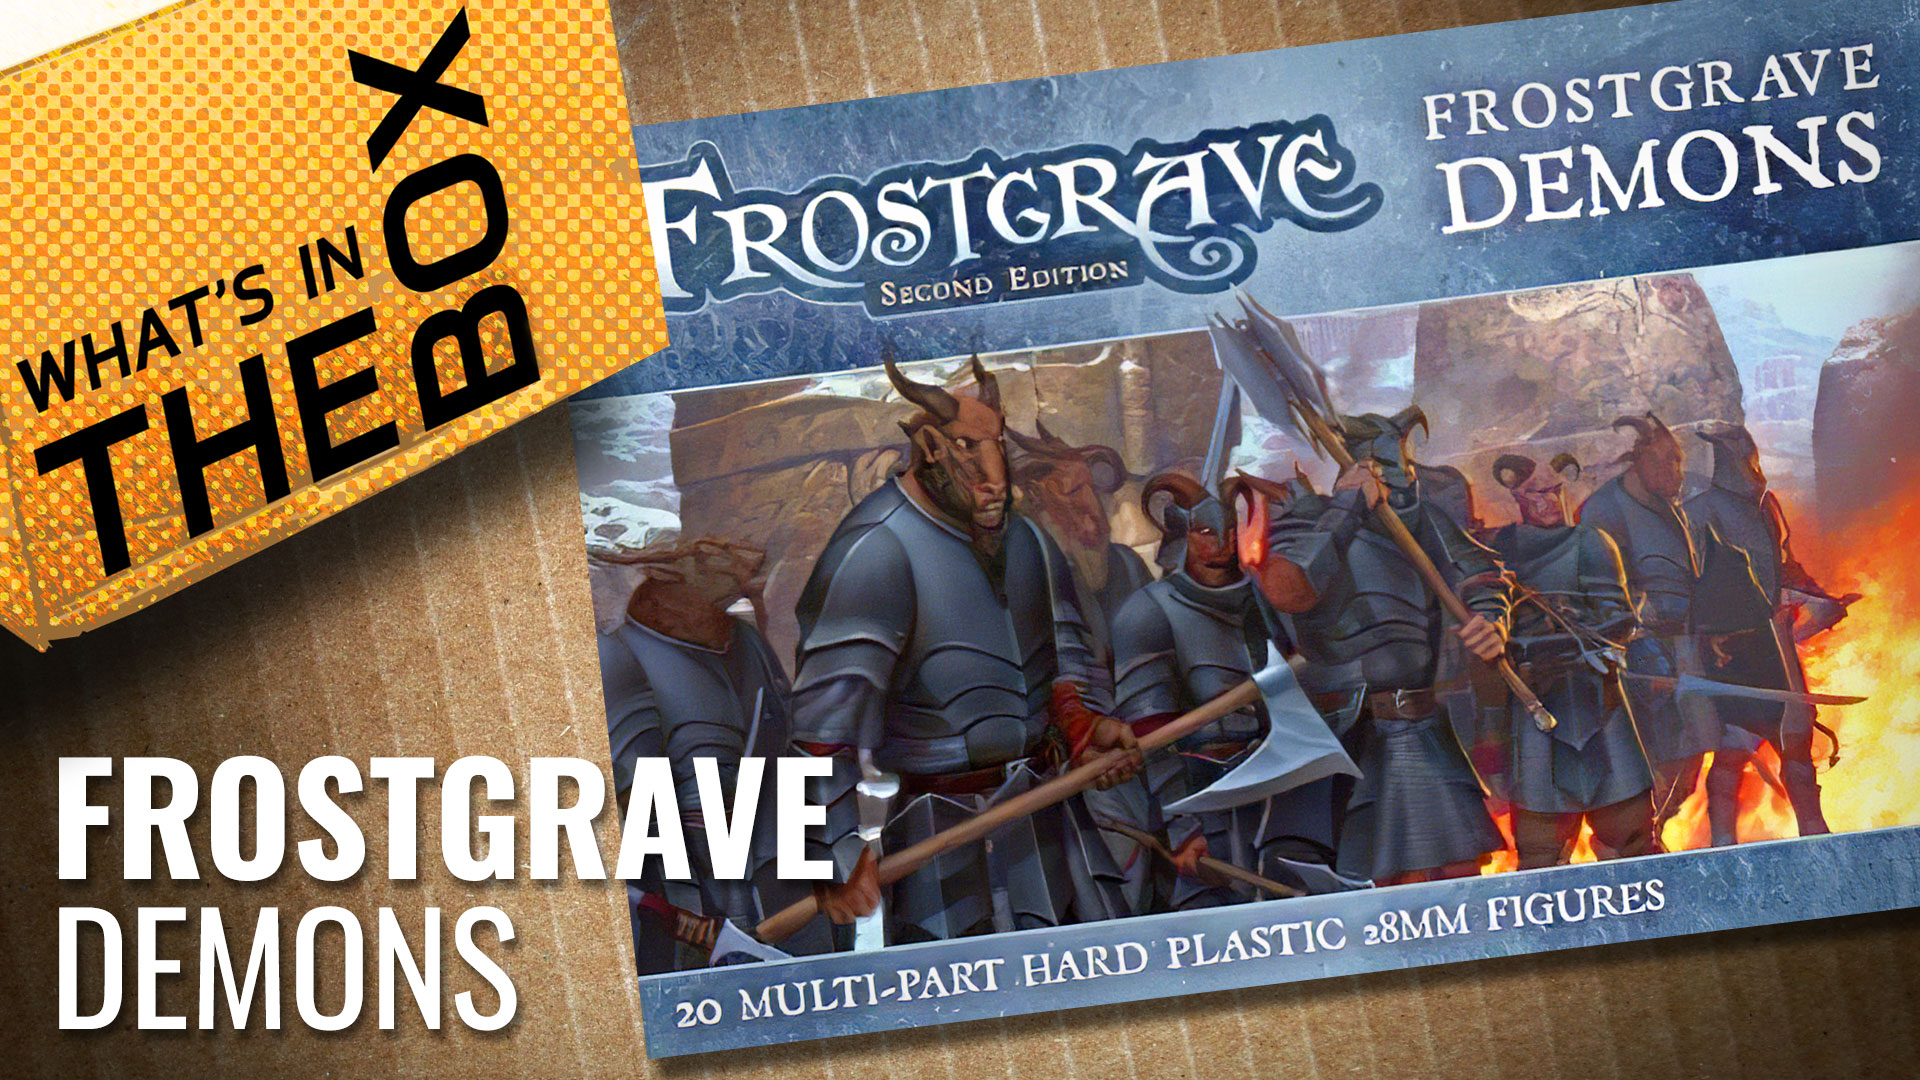 prey_Frostgrave-Demons-coverimage